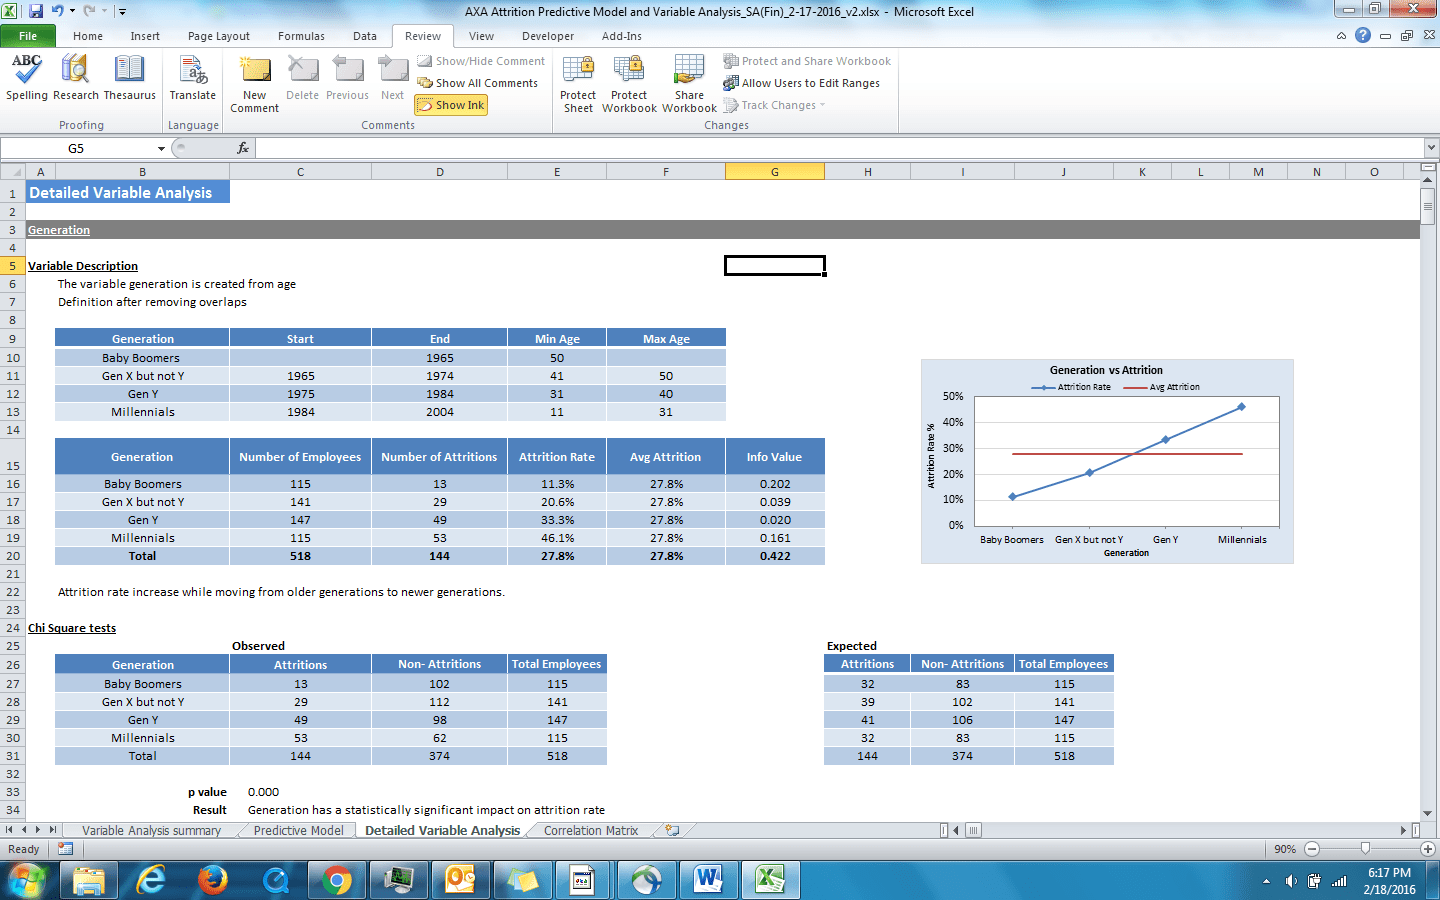 Excel Options Greyed Out